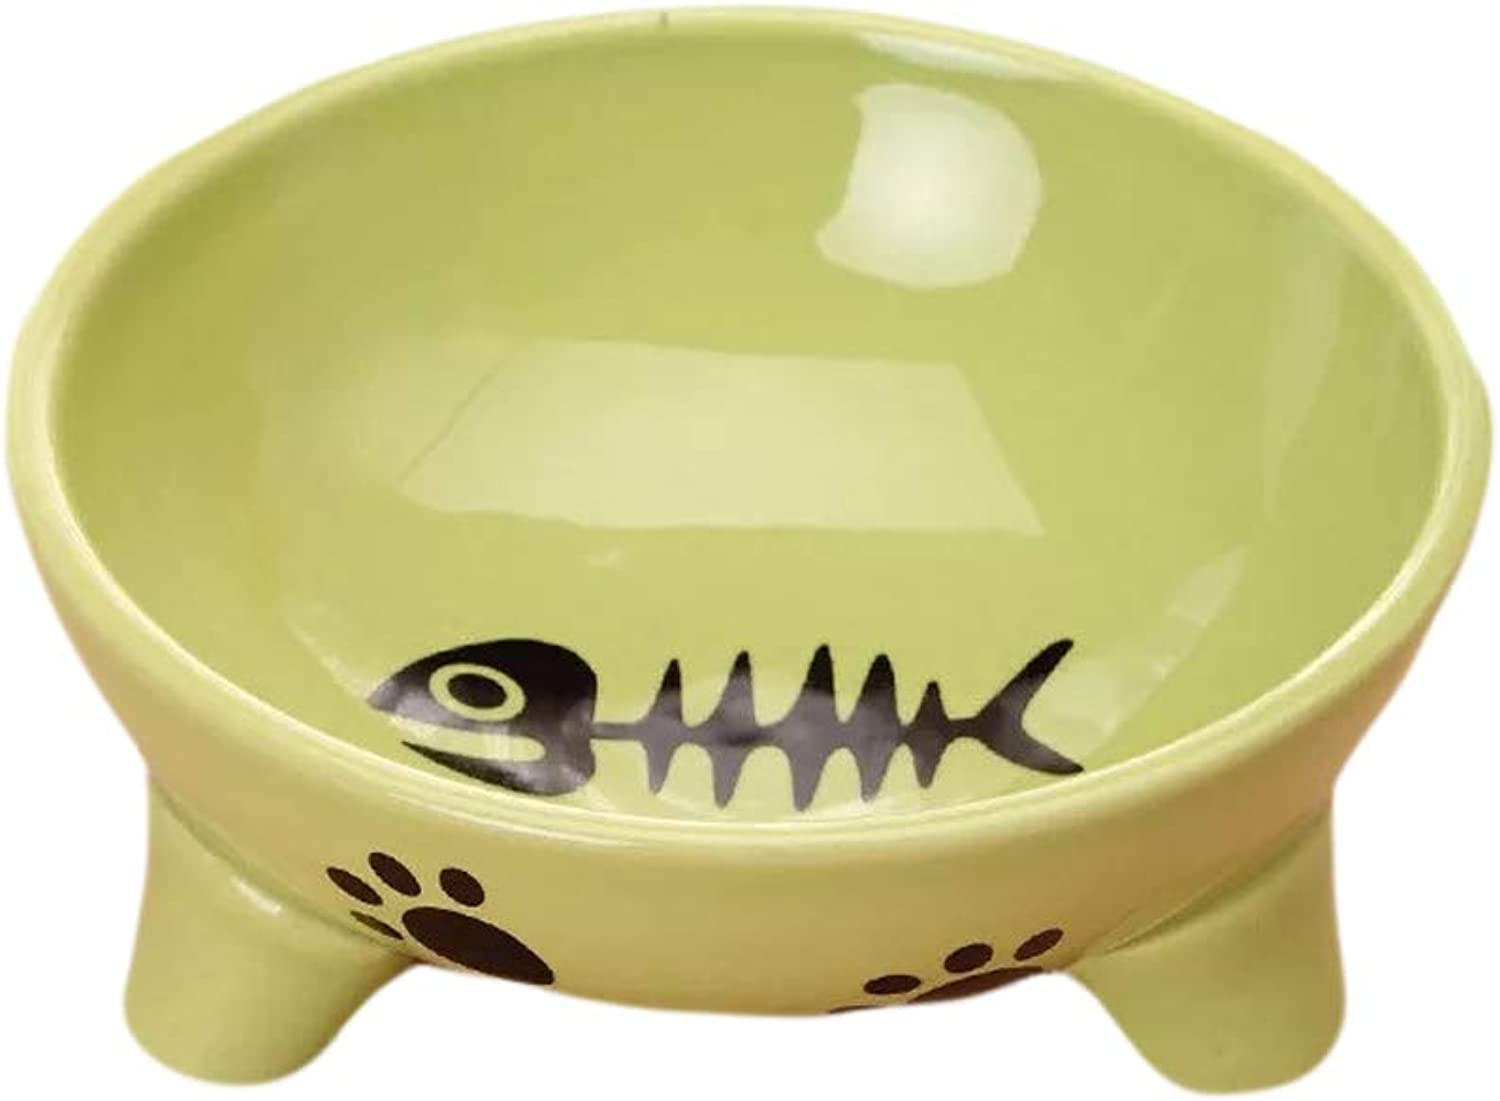 Ceramic Cat Food Bowl Wide Cat Food Dish Not Easy to Fall Over Non Slip Cat Feeding Bowl with Stylish Pattern Clean and Convenient Heavy Pet Bowl for Two colors Optional,Green